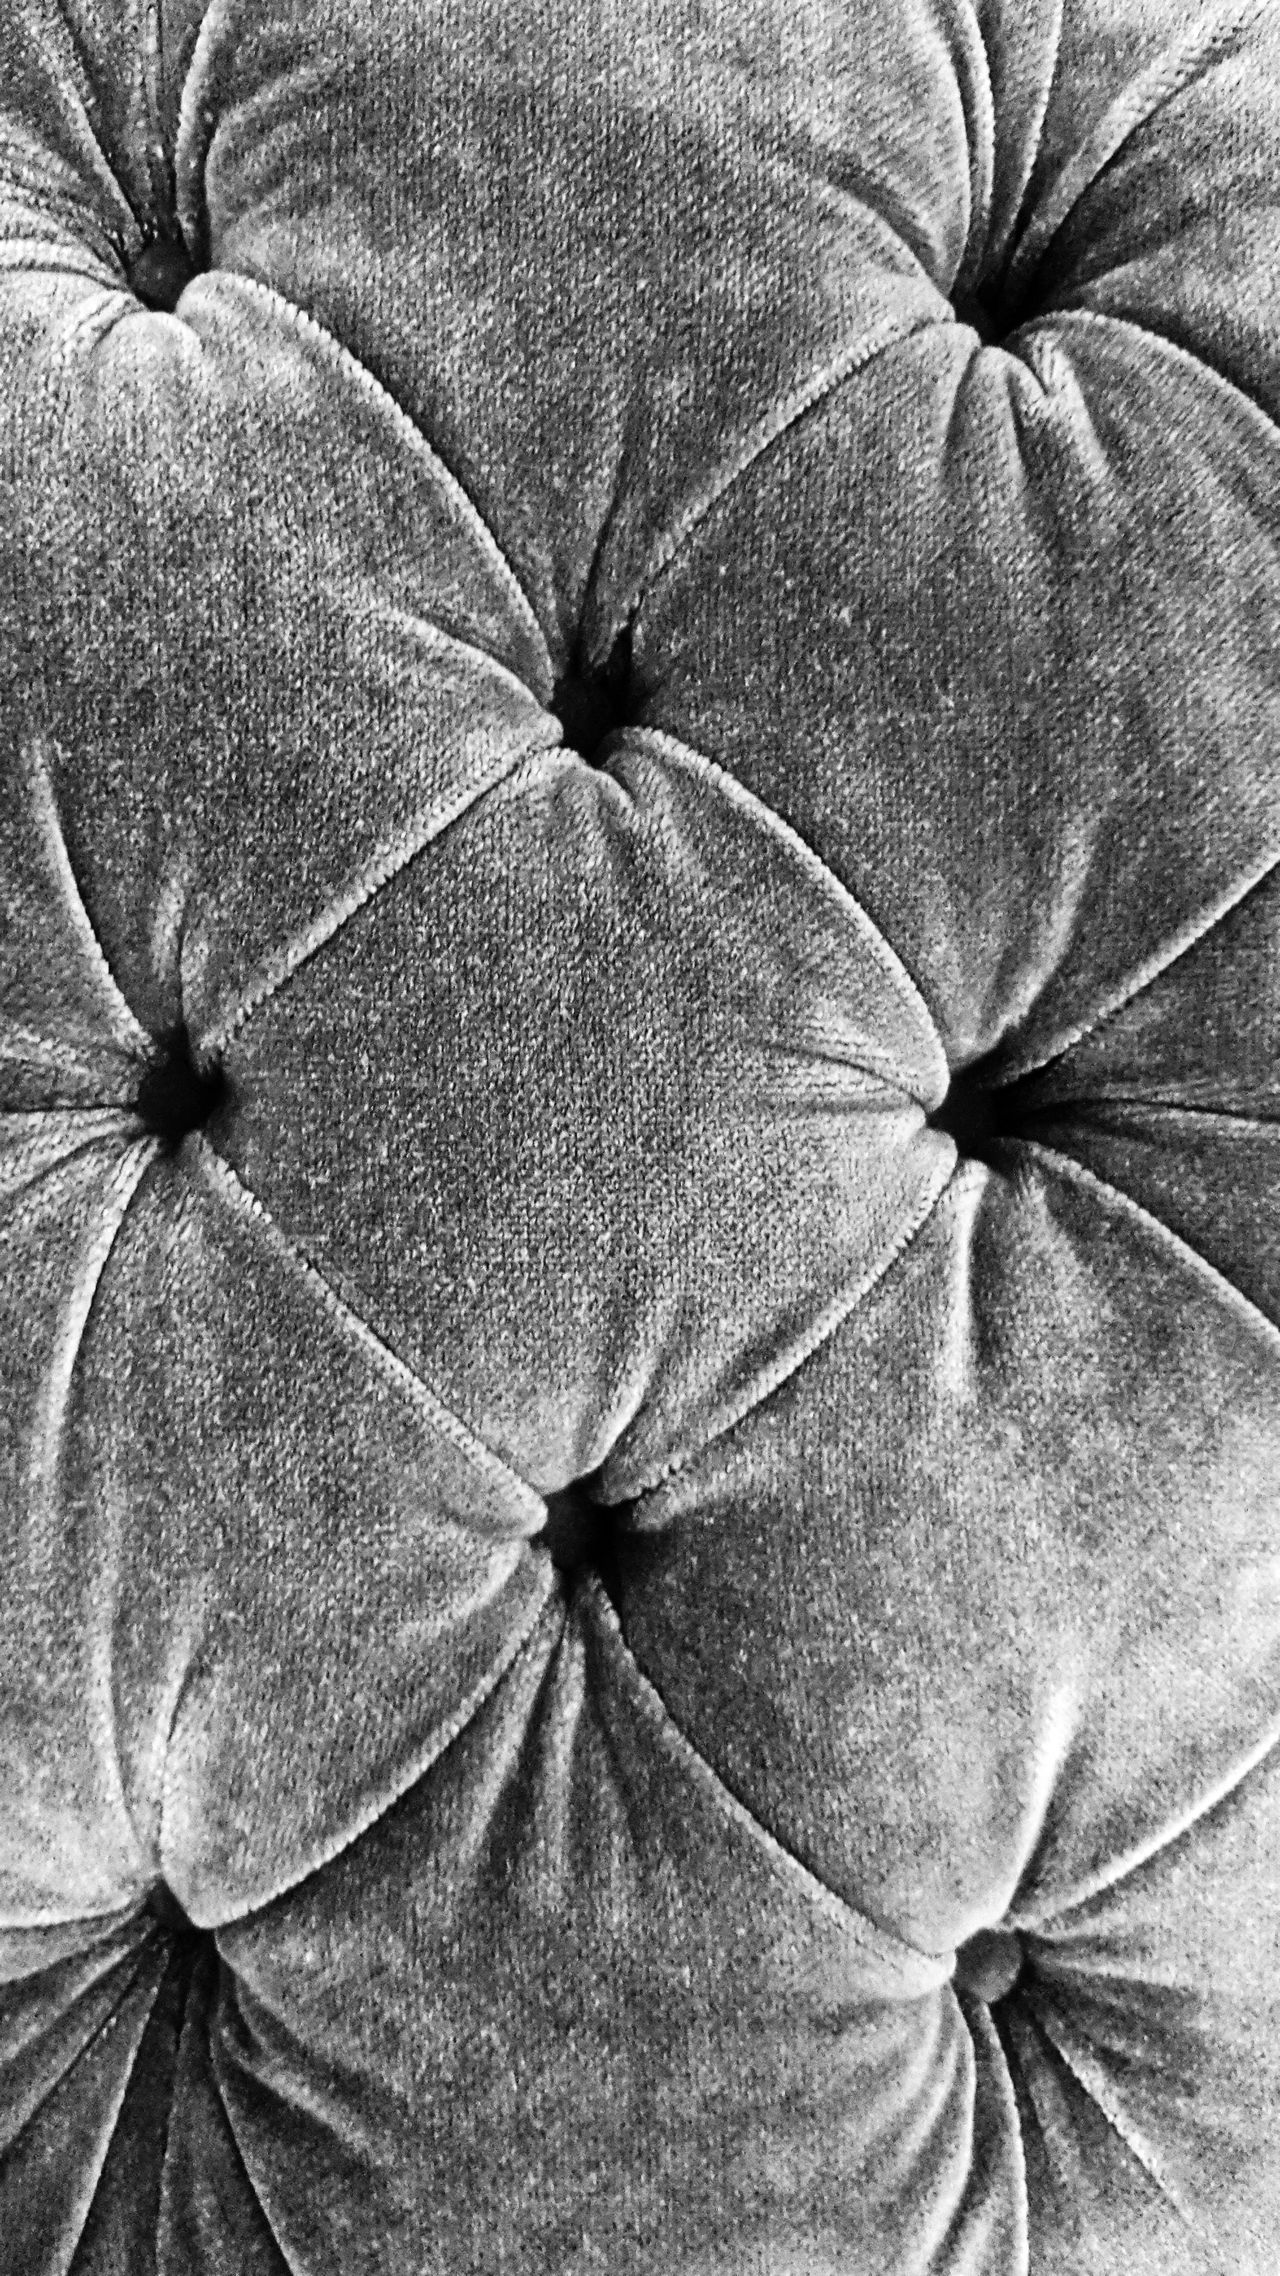 Backgrounds Close-up No People Upholstery Cushion Black & White B/w Full Frame Pattern Textured